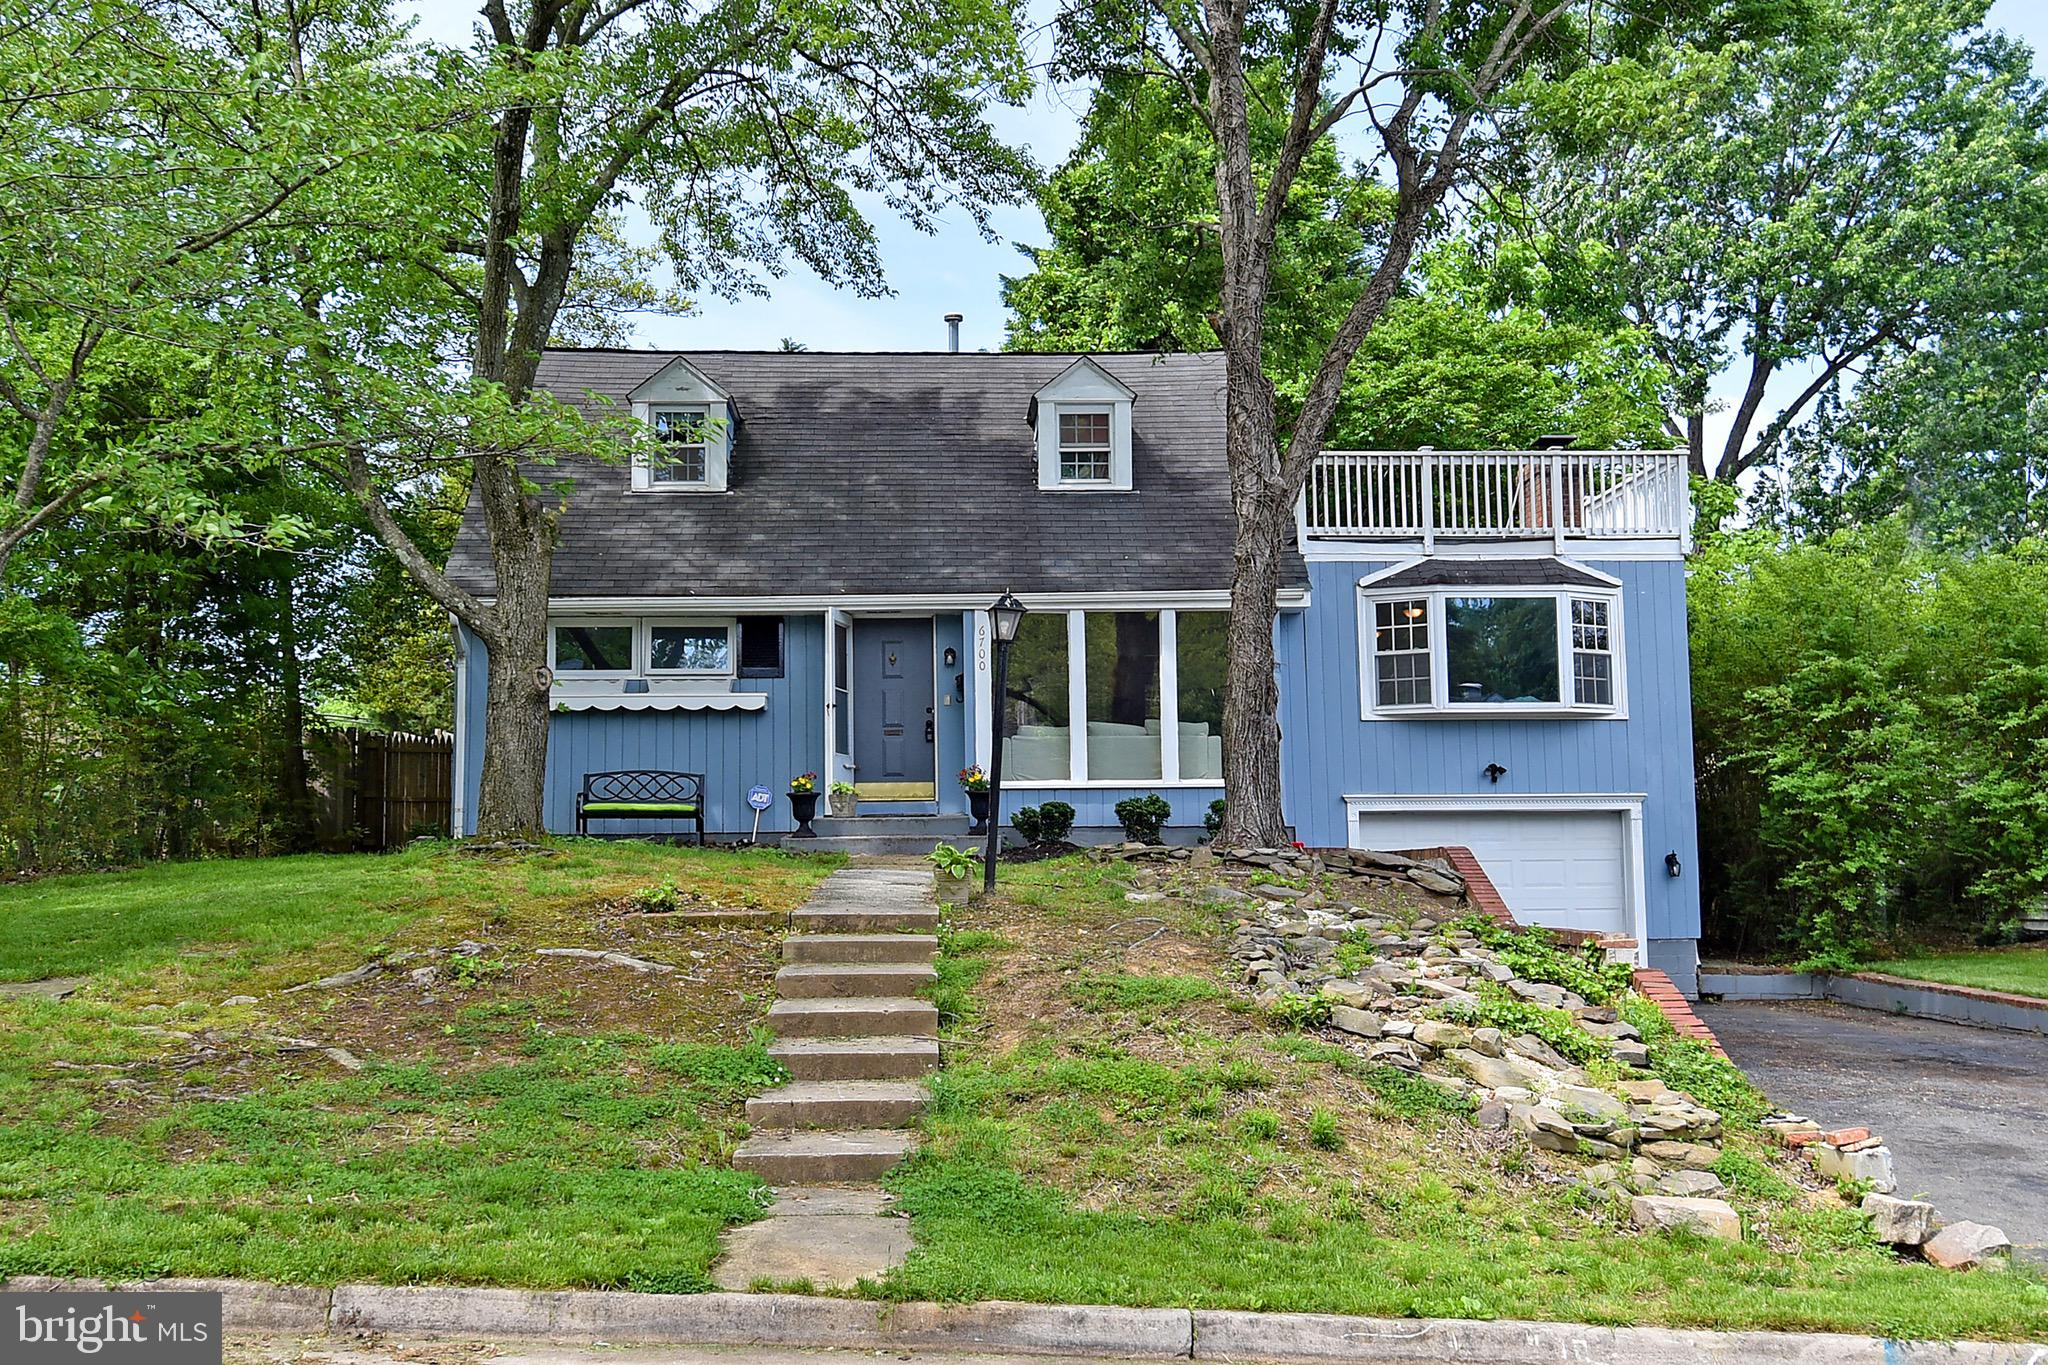 4 BEDROOMS 2 FULL BATH CAPE COD! HOME ALSO FEATURES UPDATED KITCHEN(Granite Counters), POOL, BUMPOUT,NEWER GARAGE DOOR, AND MUCH MORE! SELLER IN THE PROCESS OF MOVING STUFF OUT. CANNOT BEAT THE LOCATION!